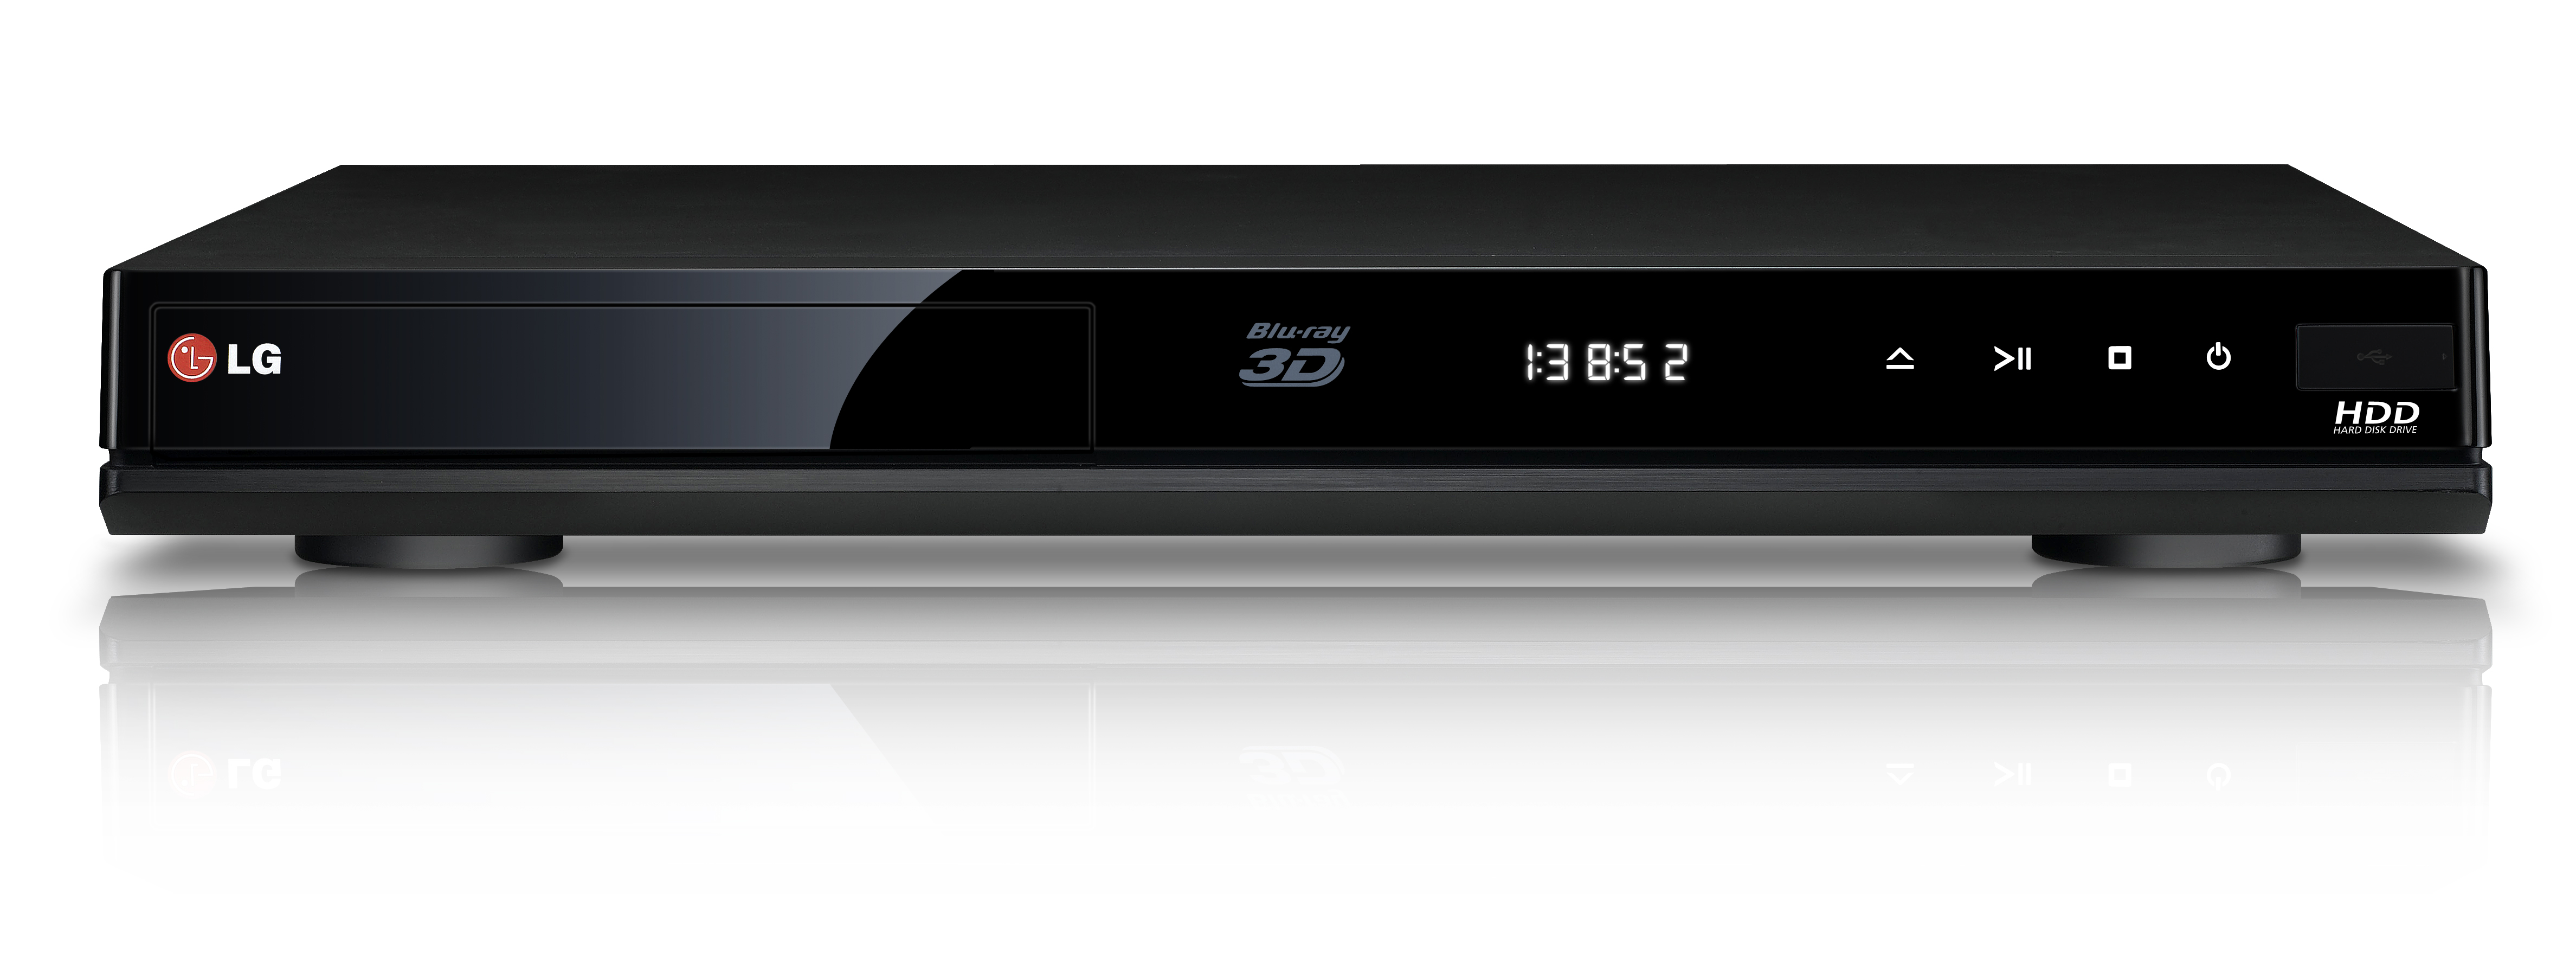 lg hr832t blu ray player 3d dvb t usb hdd hdmi 250gb dolby. Black Bedroom Furniture Sets. Home Design Ideas